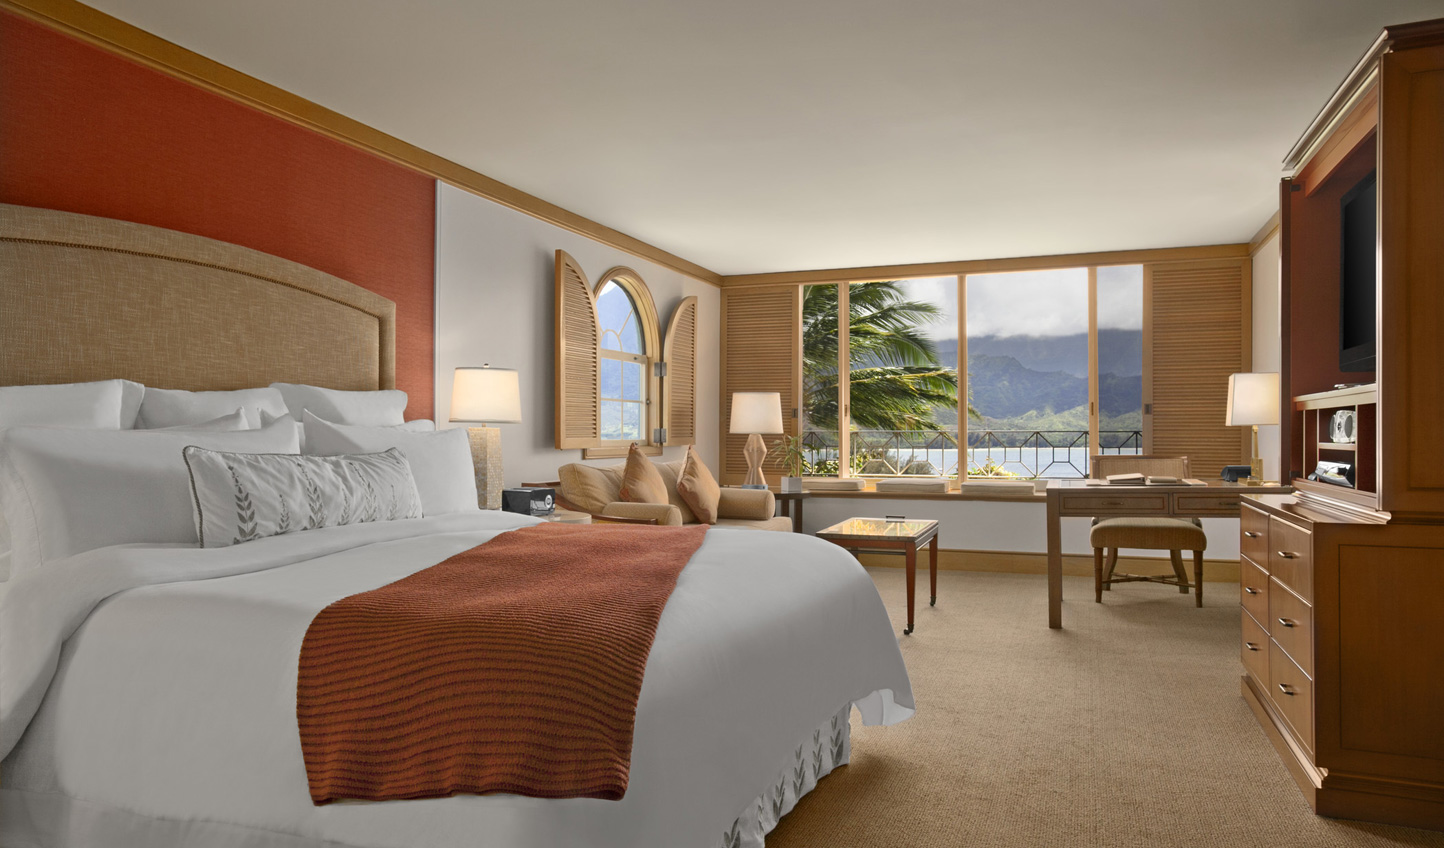 Luxurious rooms with a touch of island chic